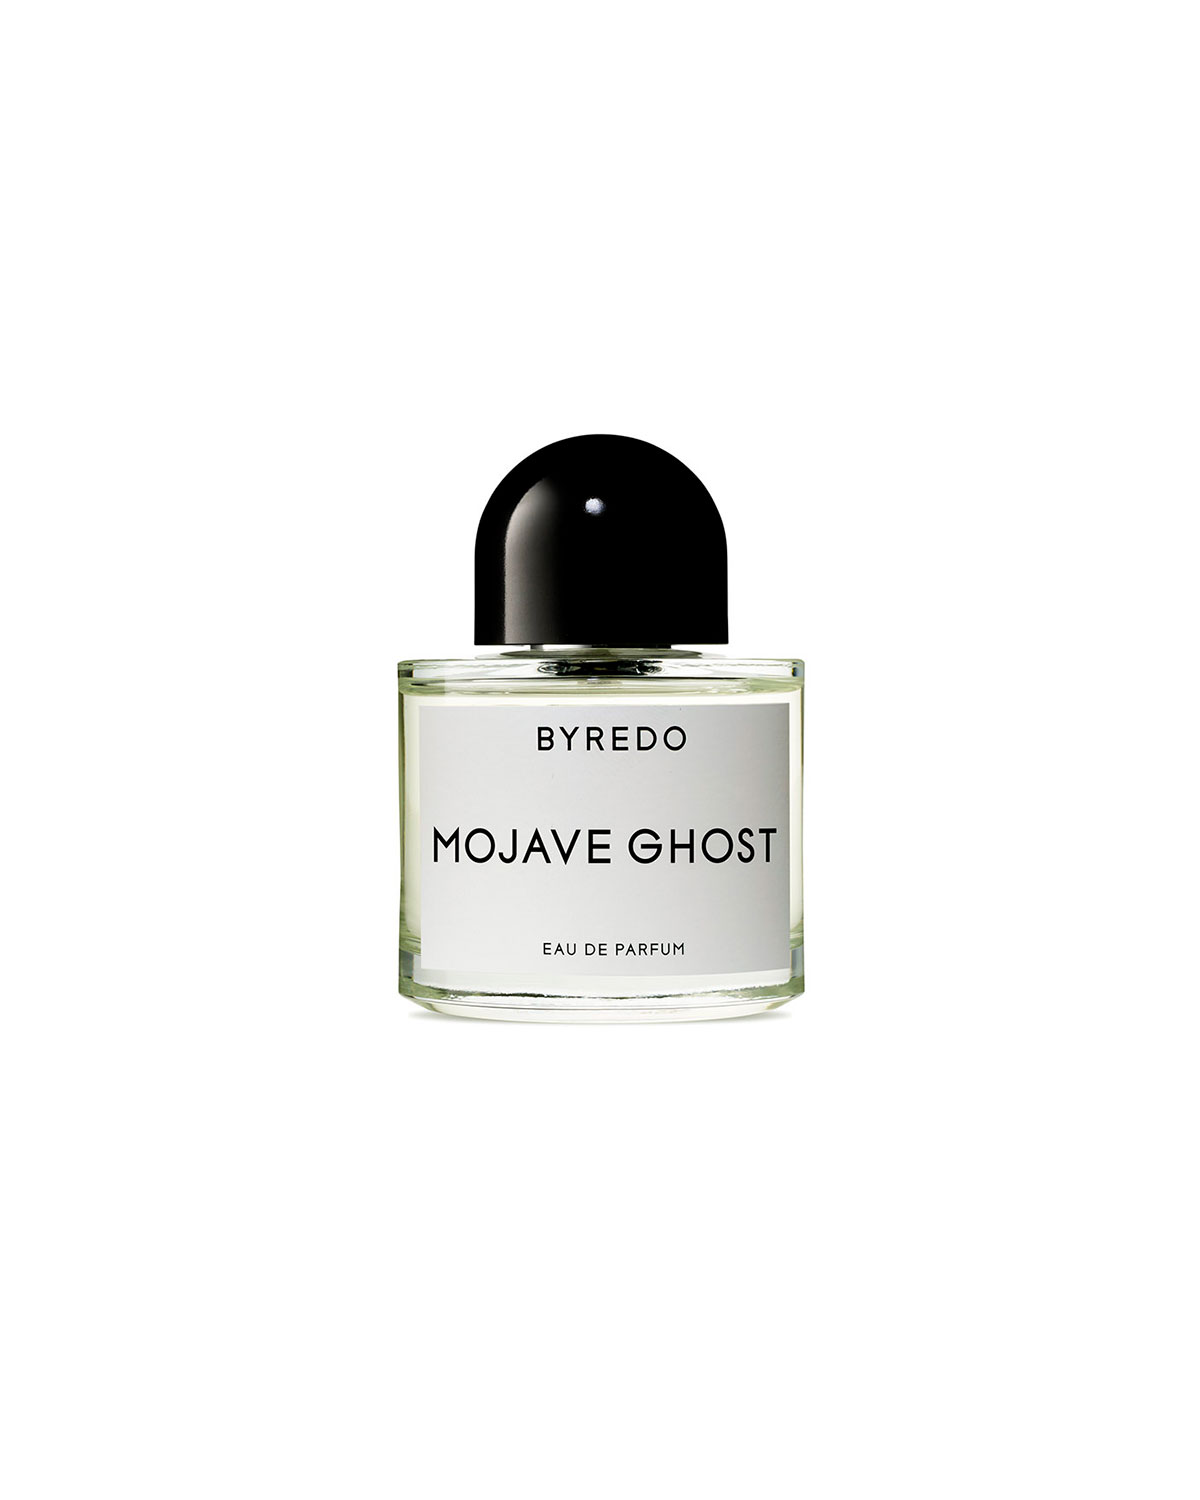 Mojave Ghost Eau de Parfum, 3.3 oz./ 100 mL